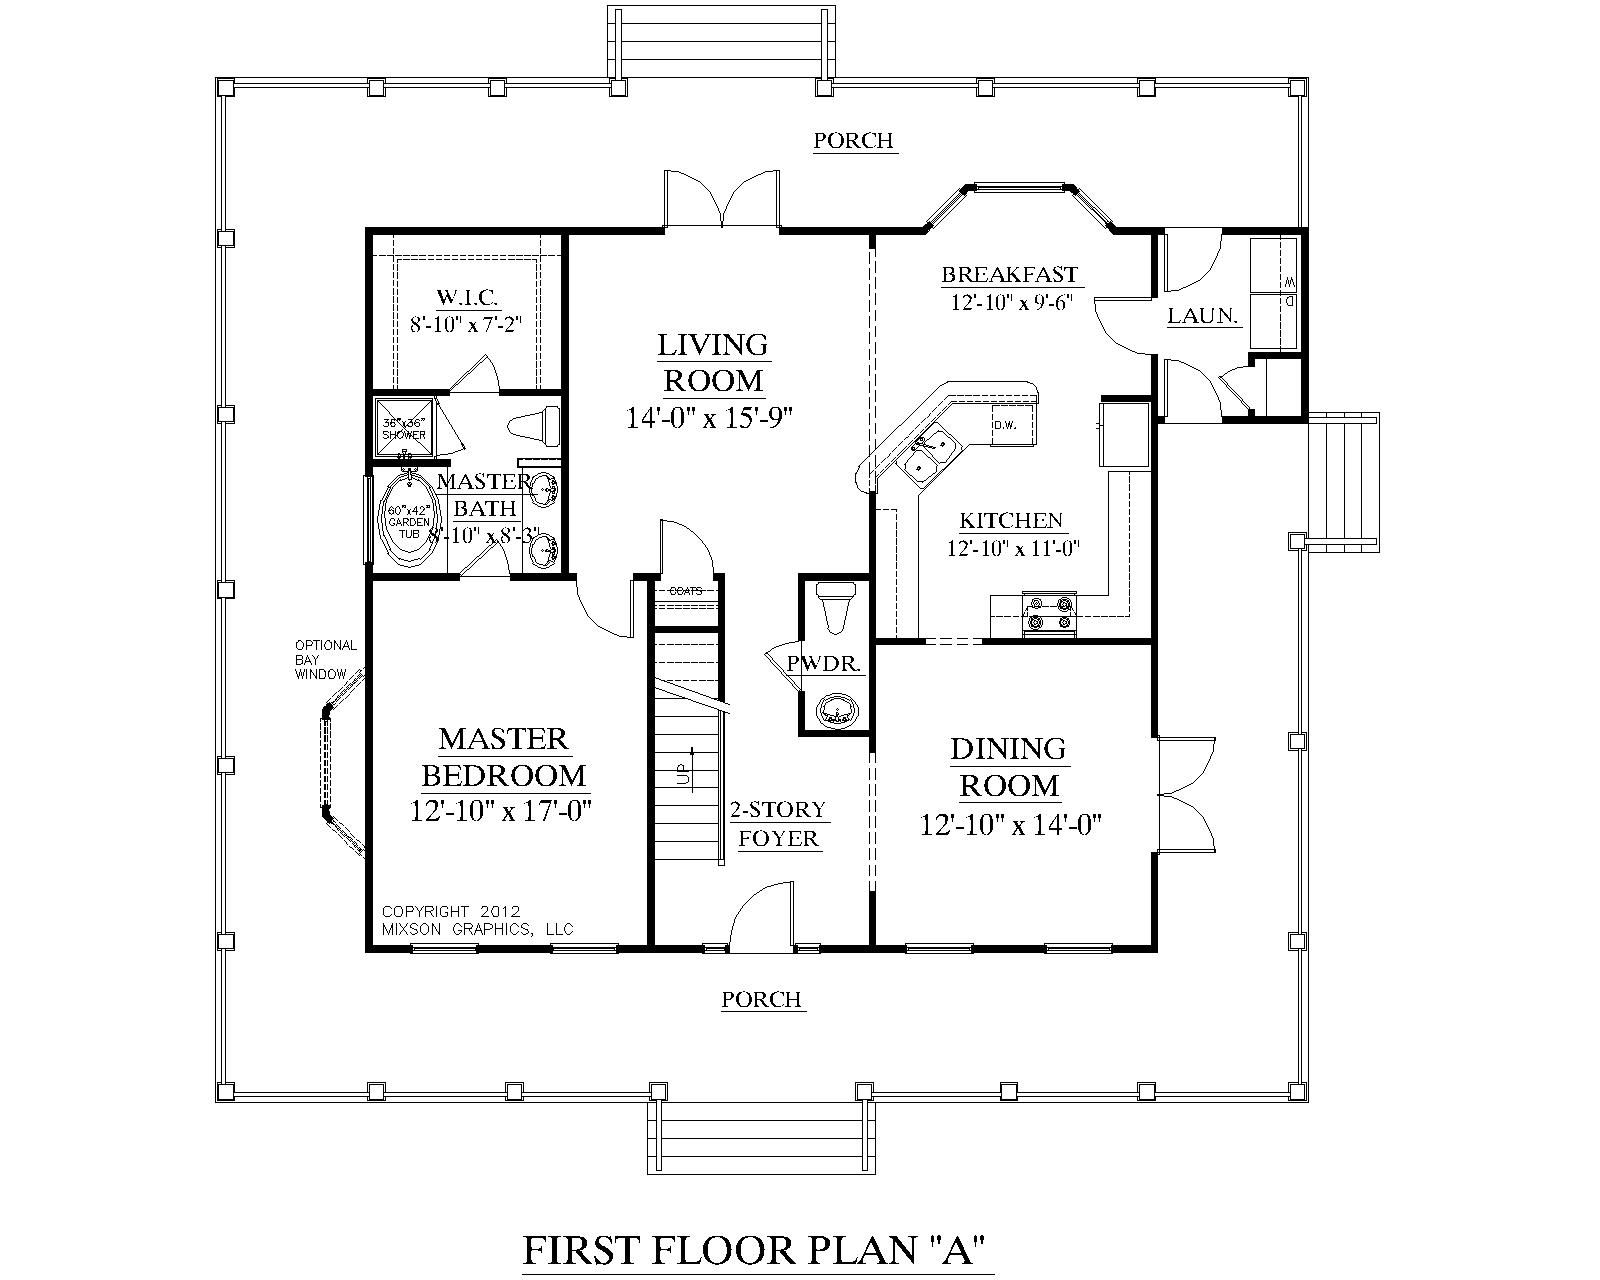 Pin By Regina Waters On For The Home One Bedroom House Plans Two Story House Plans One Bedroom House